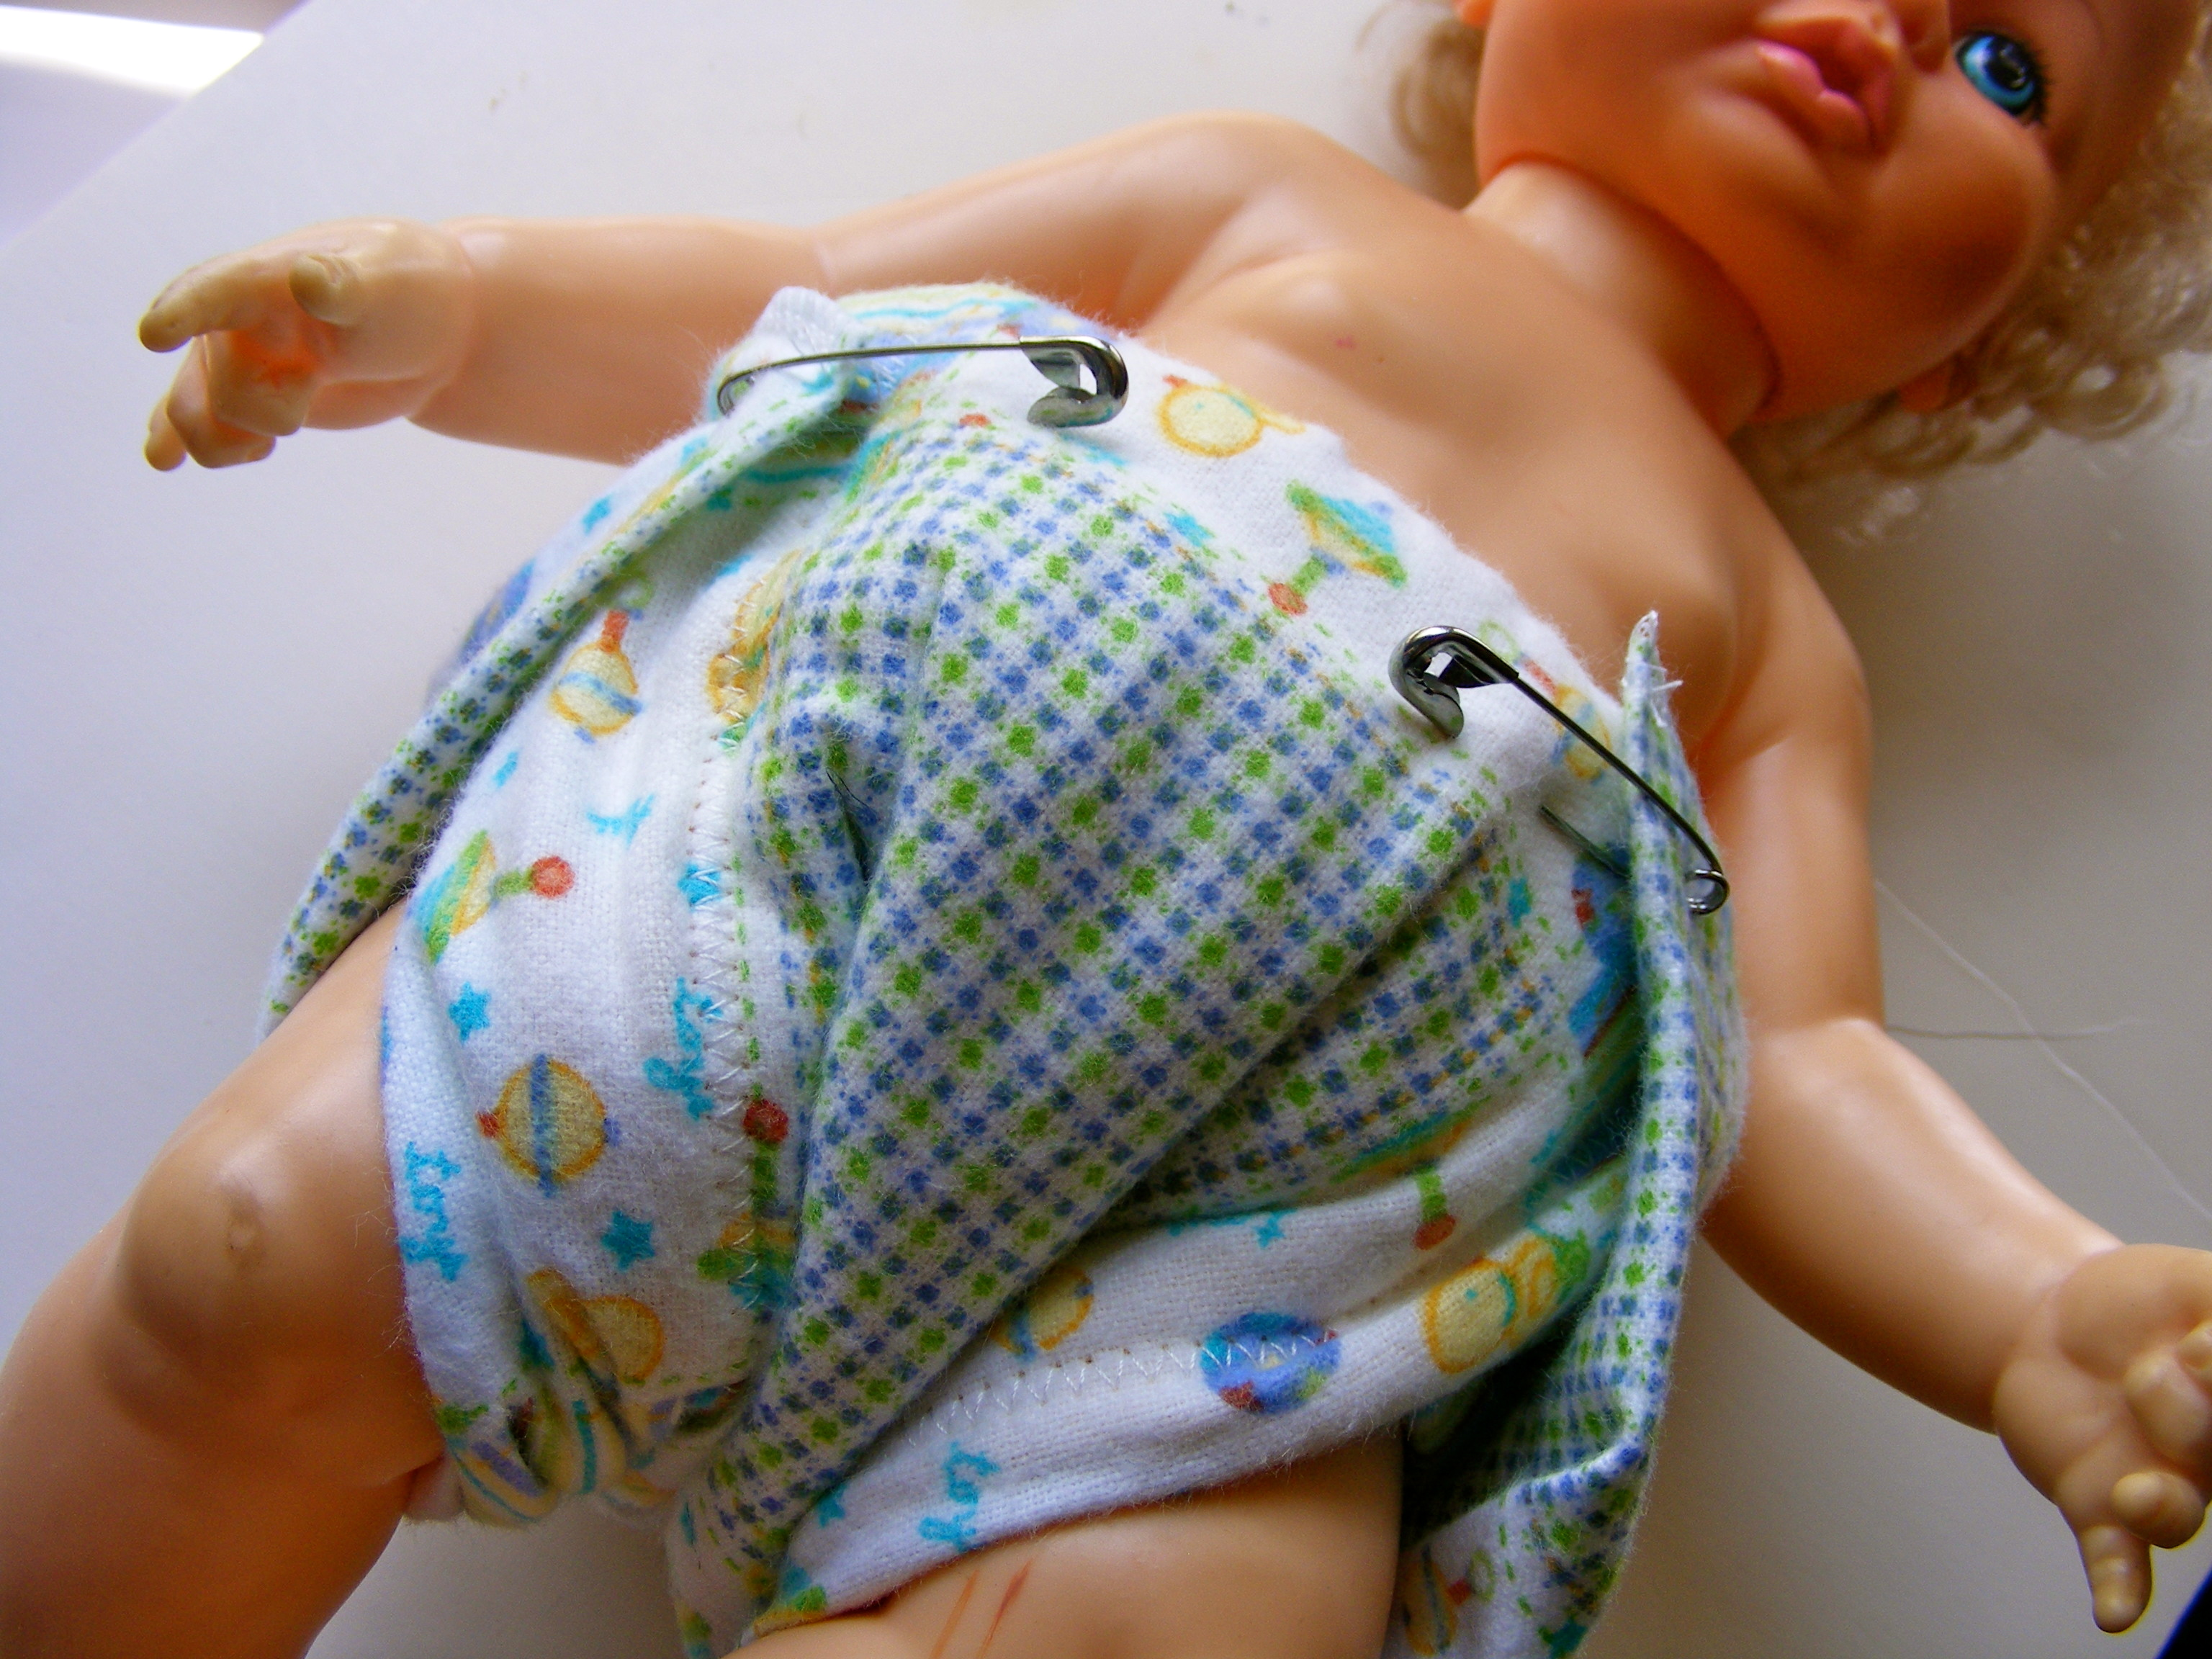 how to put on a prefold diaper with a snappi